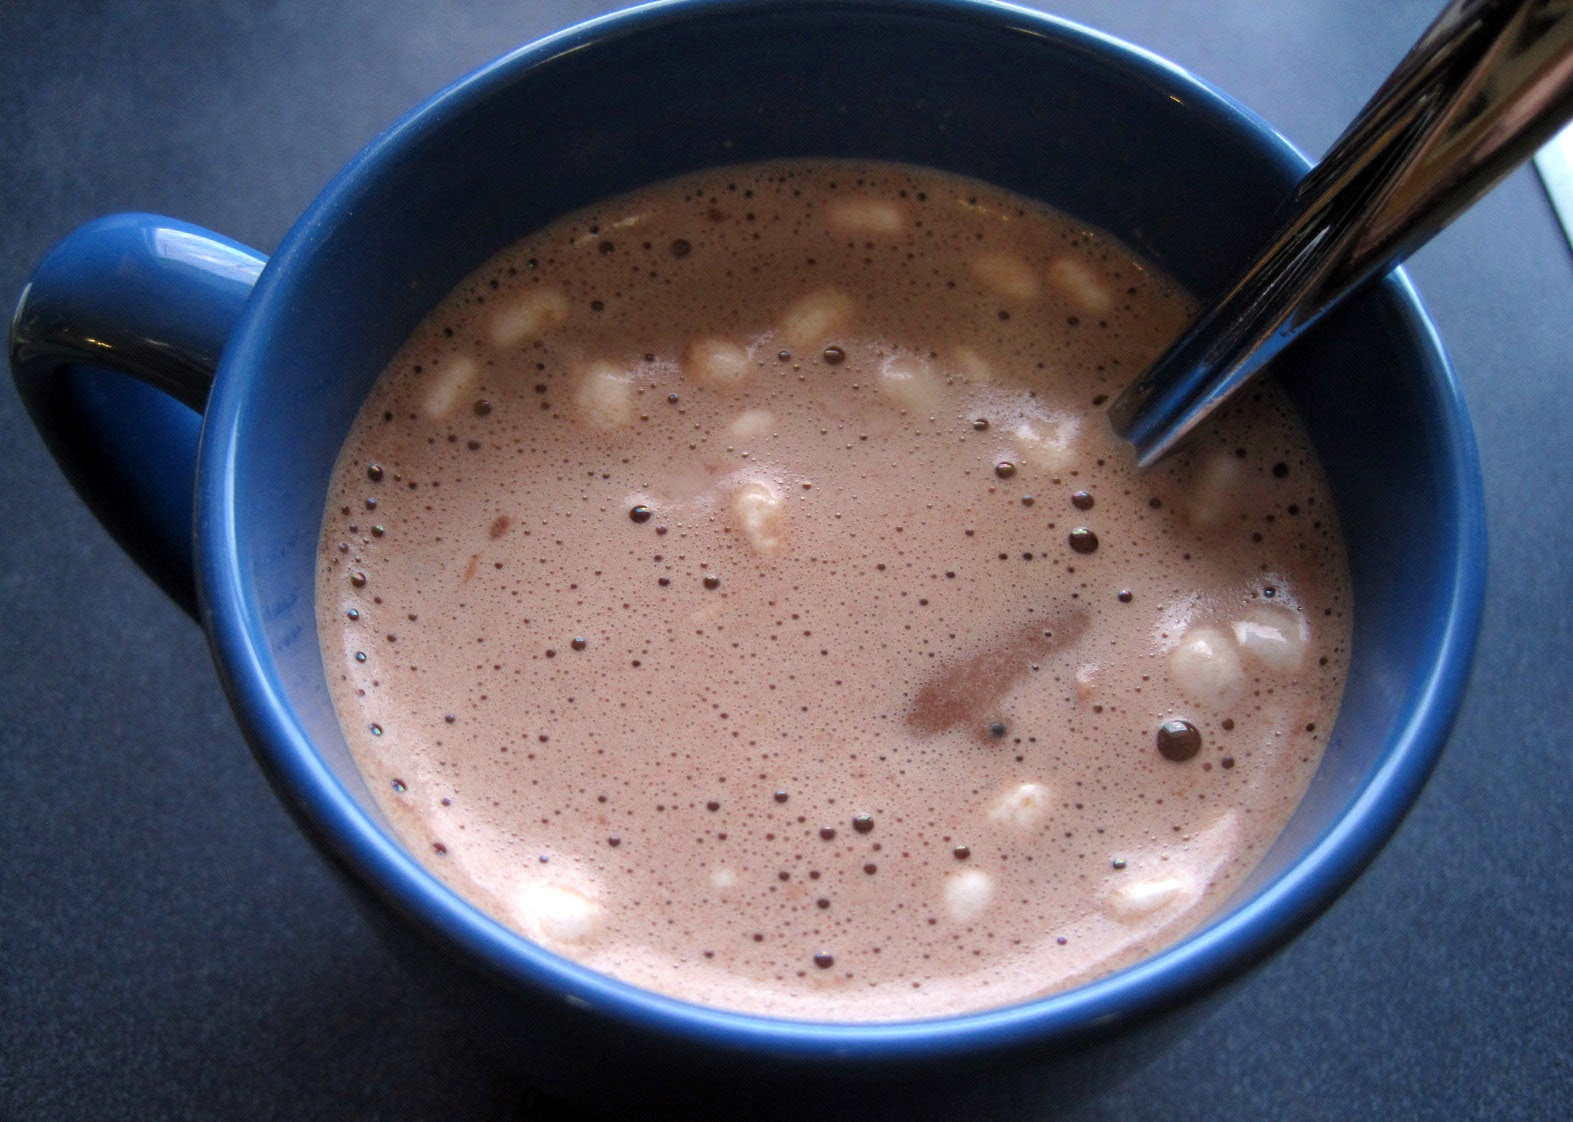 BariWise high protein diet hot cocoa chocolate with marshmallows review